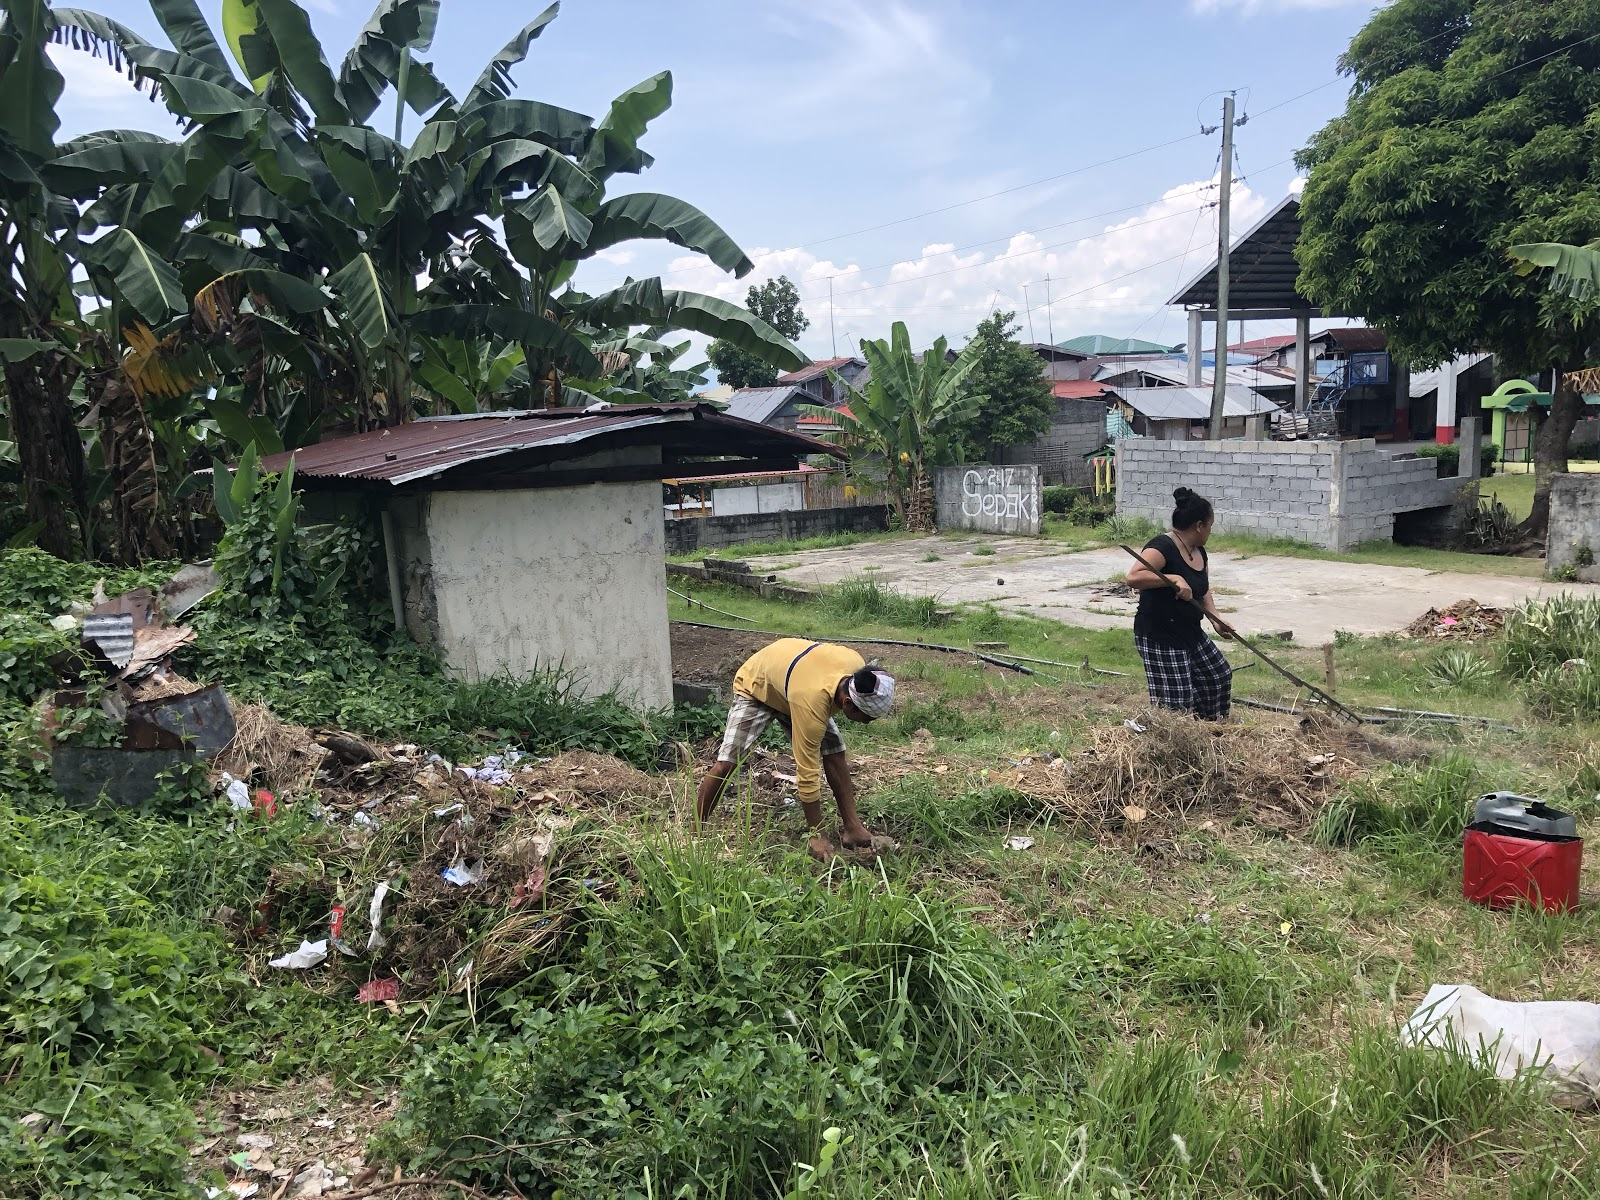 Tahanan ministry personnel spent the morning working to clear trash and brush at the village's elementary school as a small way to bless the community.